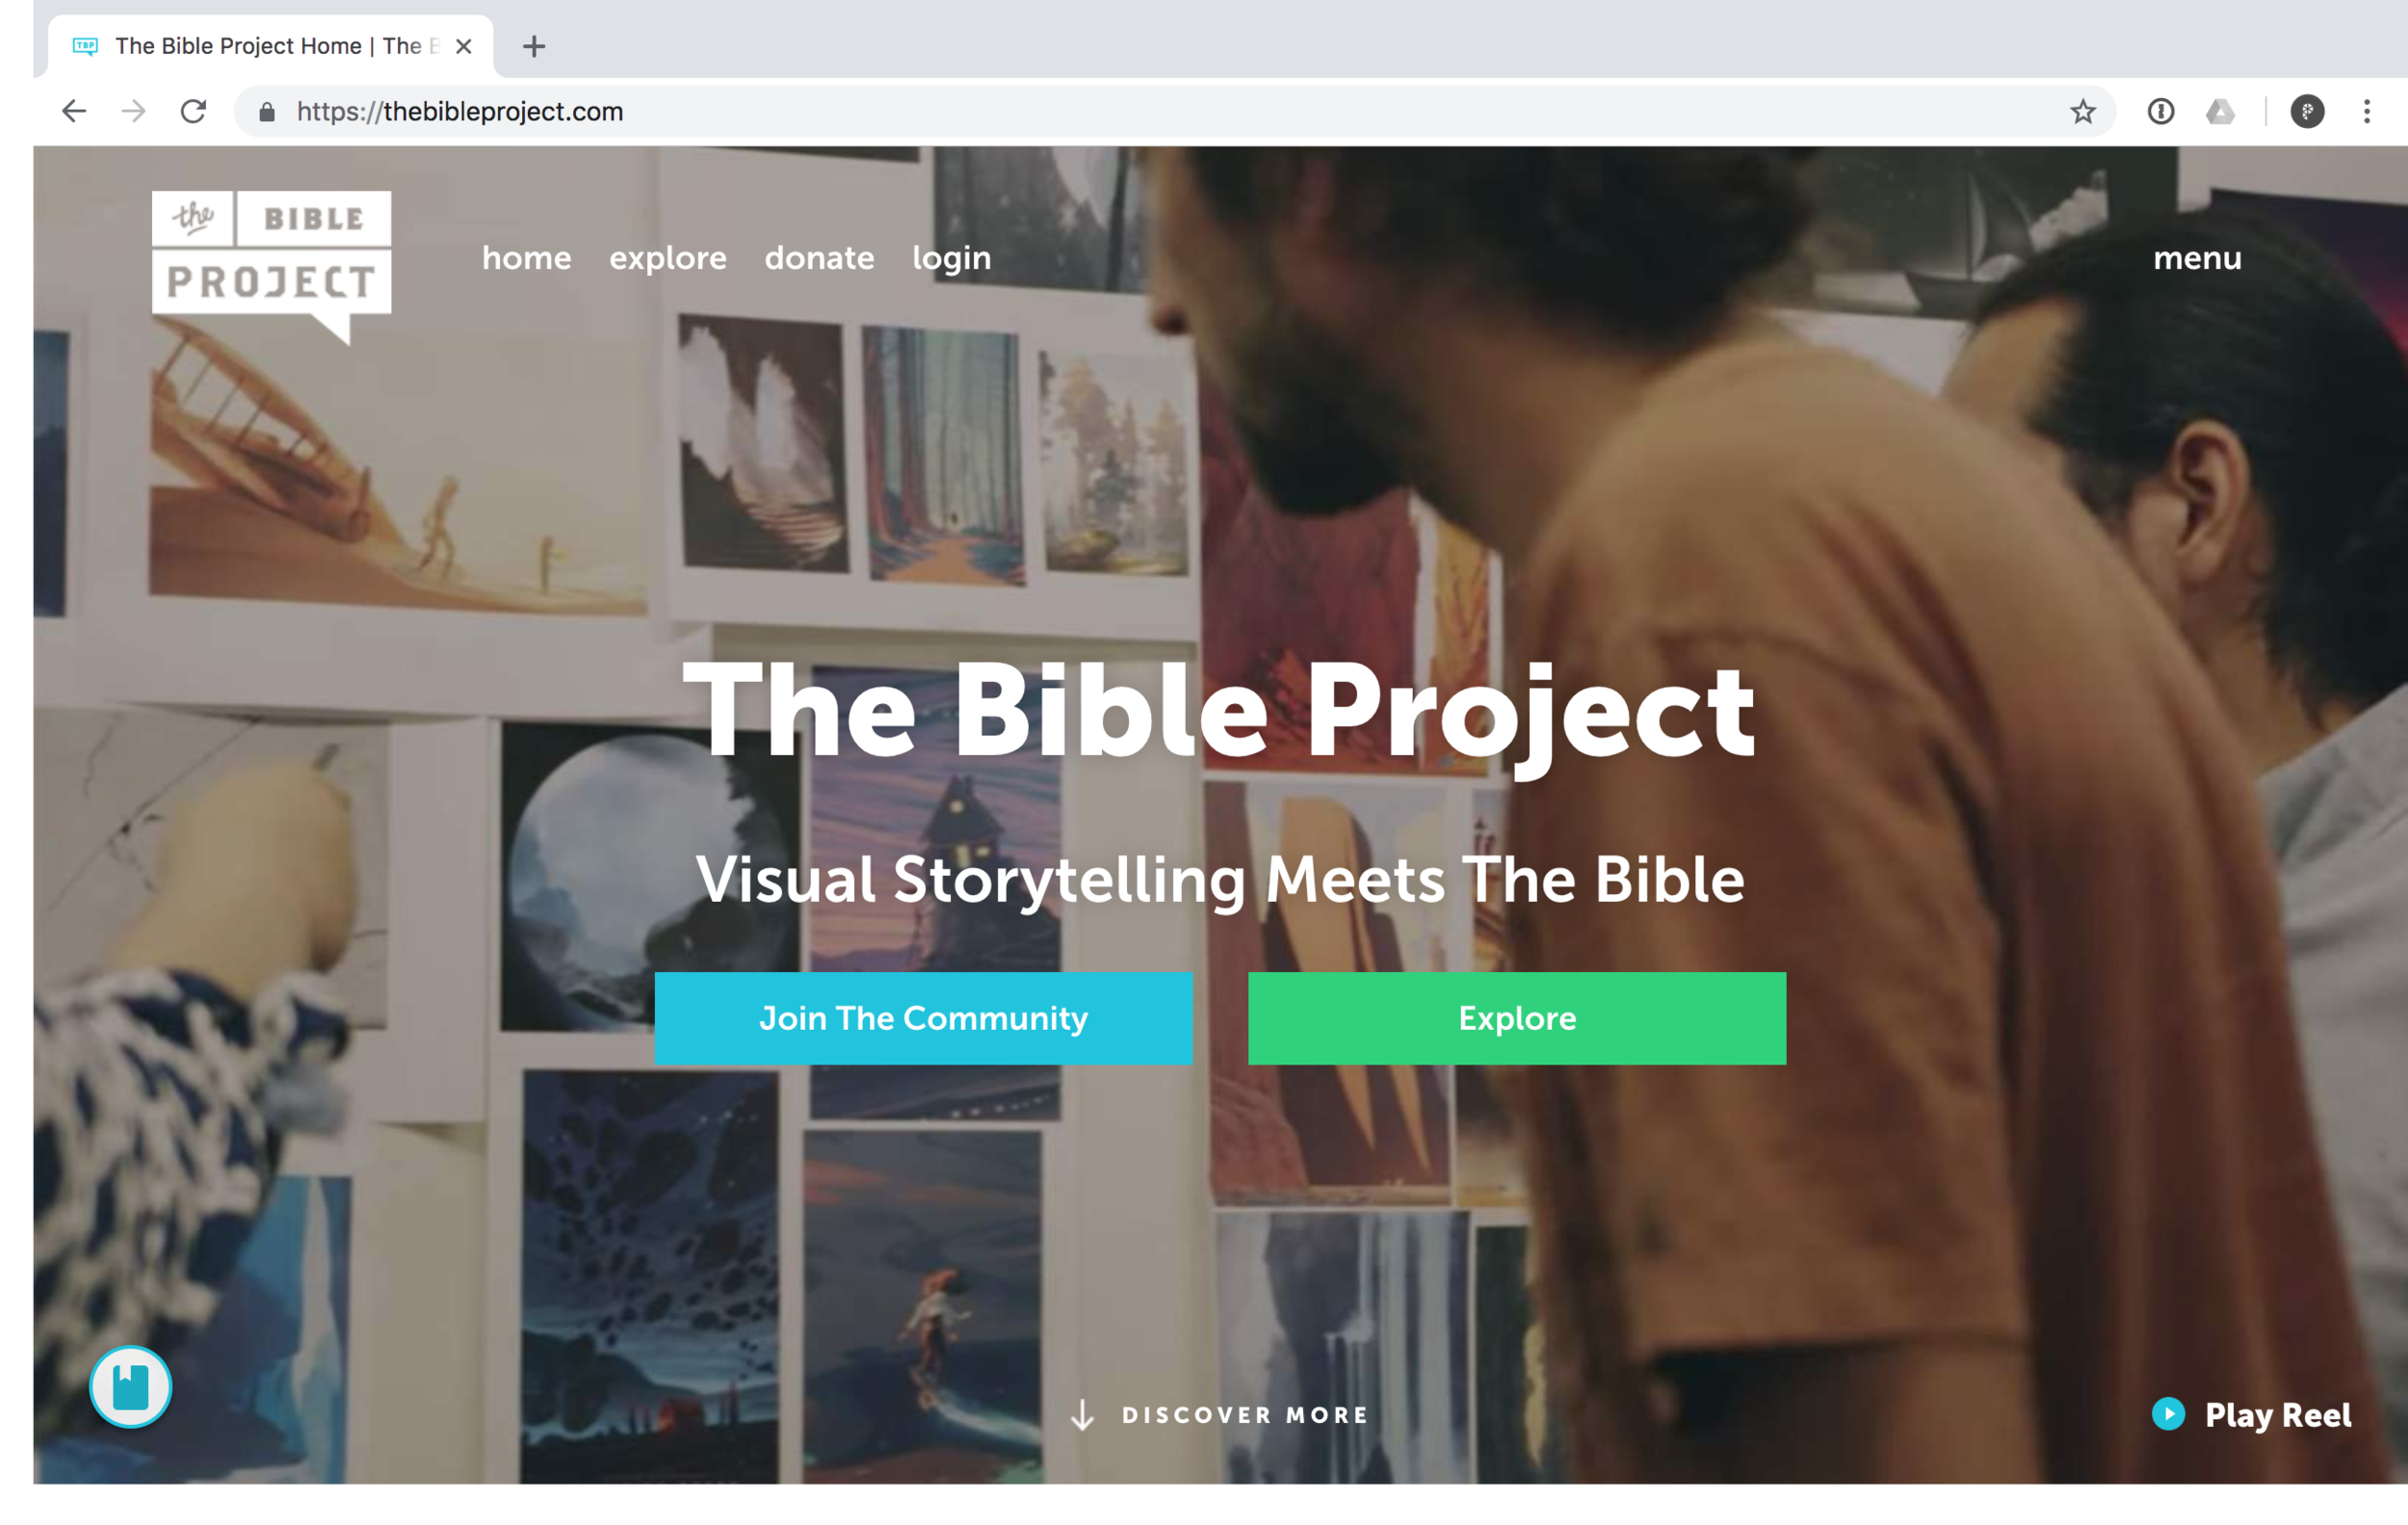 The Bible Project is a non-profit animation studio that produces short-form, fully animated videos to make the biblical story accessible to everyone, everywhere. They create videos, podcasts, and study guides that explore the Bible's unified story and are steadfastly committed to understanding the Bible in its historical context.